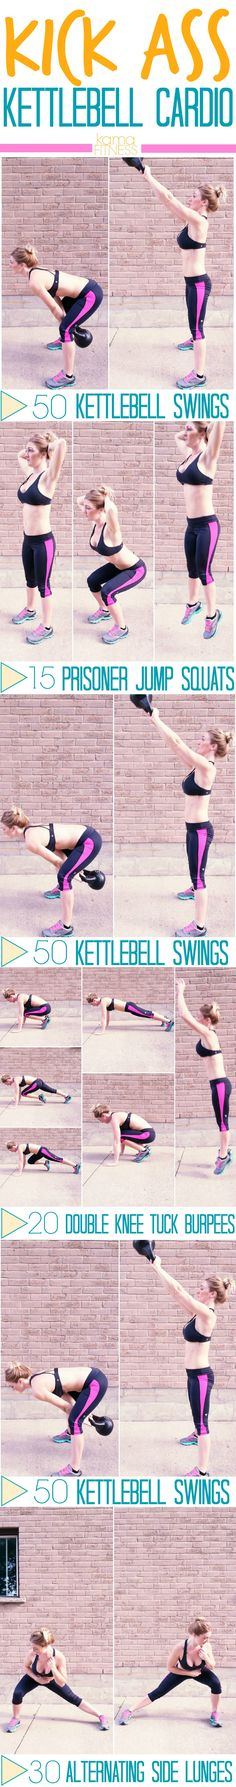 ***fave workout*** full body and cardio Kick Ass Kettlebell Cardio Workout by Kama Fitness Best Kettlebell Exercises, Kettlebell Cardio, Kettlebell Training, Kettlebell Swings, Cardio Workouts, Kama Fitness, Health Fitness, Sport, Cardio Equipment